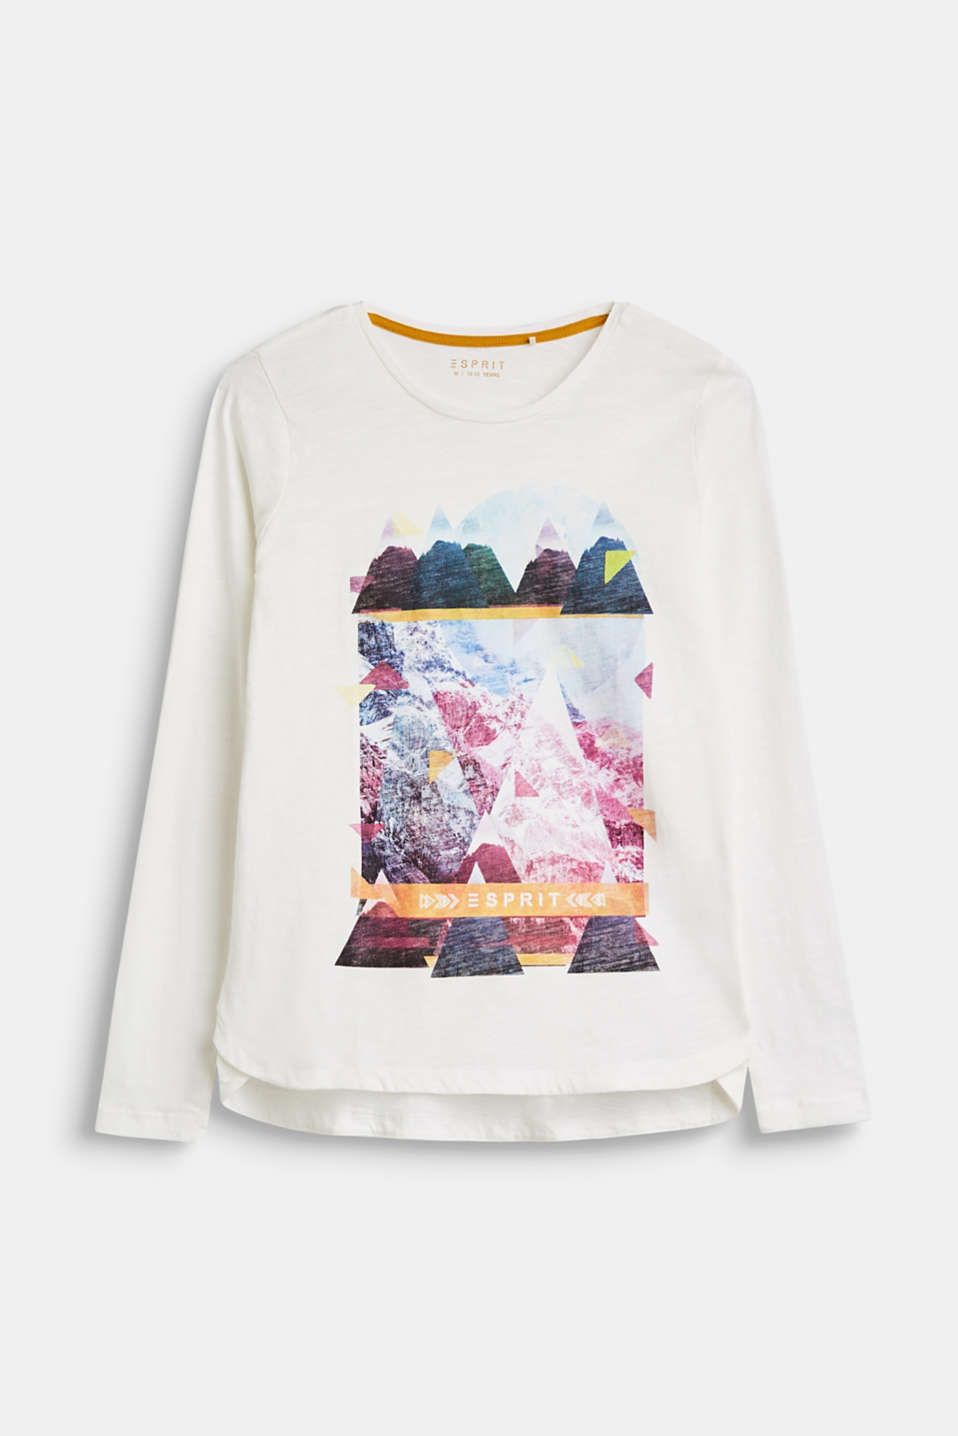 Esprit - Printed long sleeve top in slub jersey made of 100% cotton